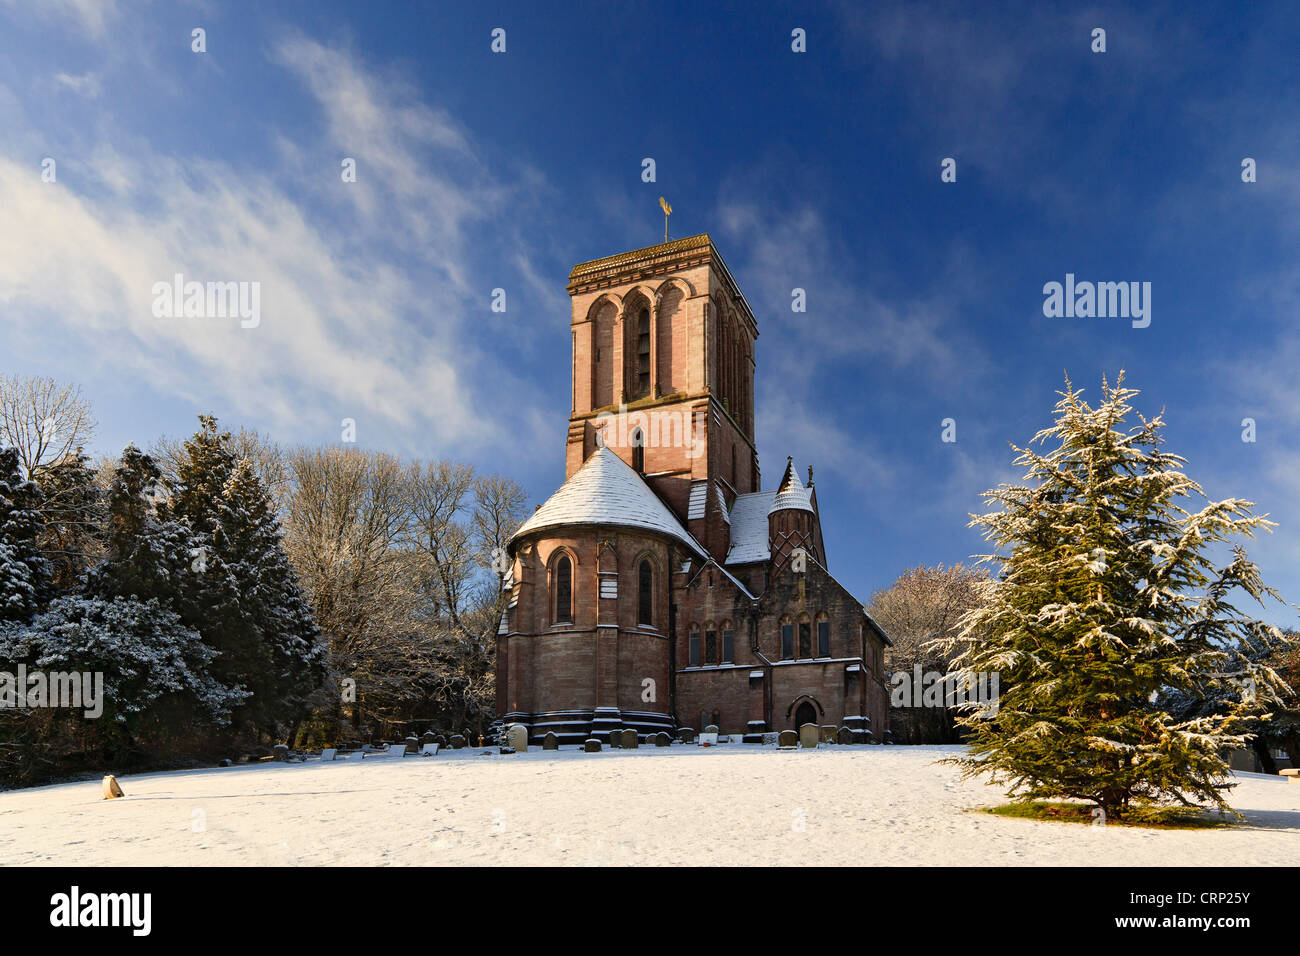 Snow covering the grounds of the Church of St. James at Kingston, on the Isle of Purbeck. - Stock Image